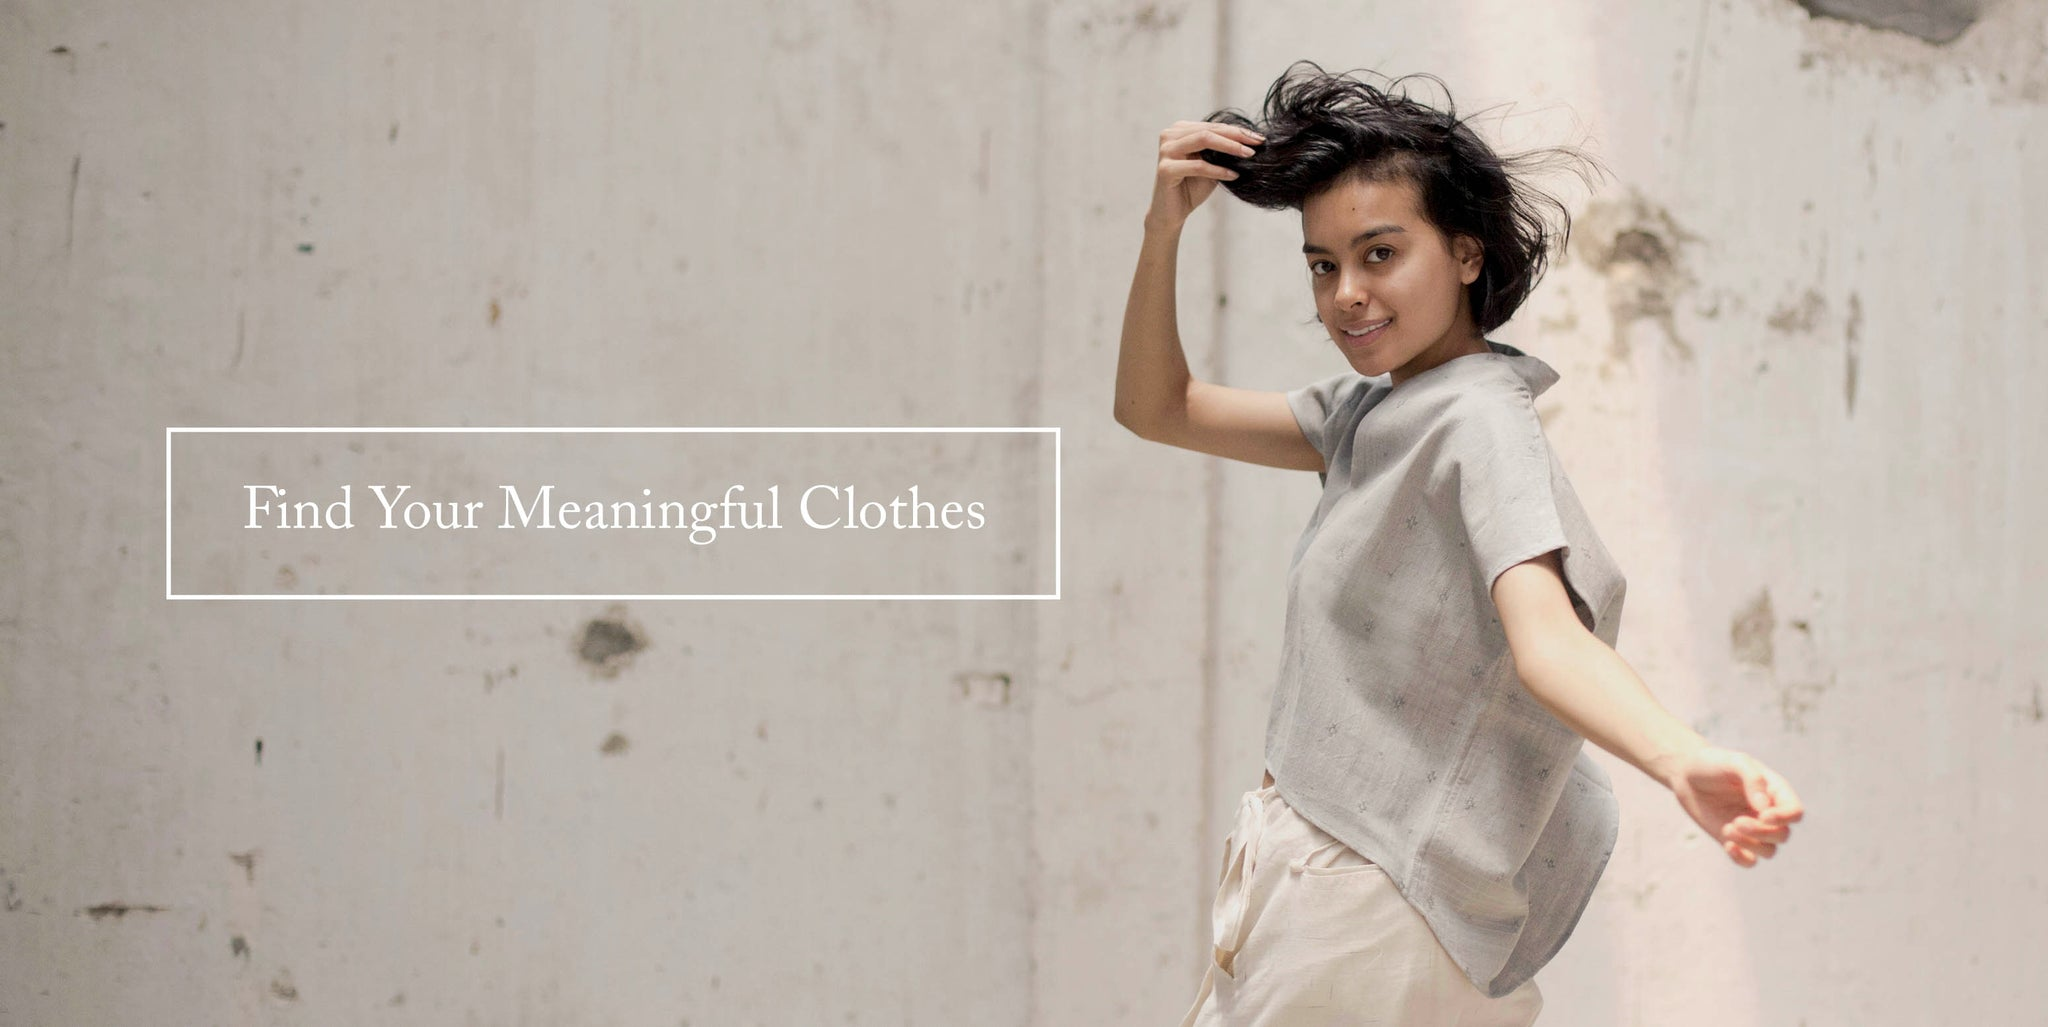 Find-your-meaningful-clothes